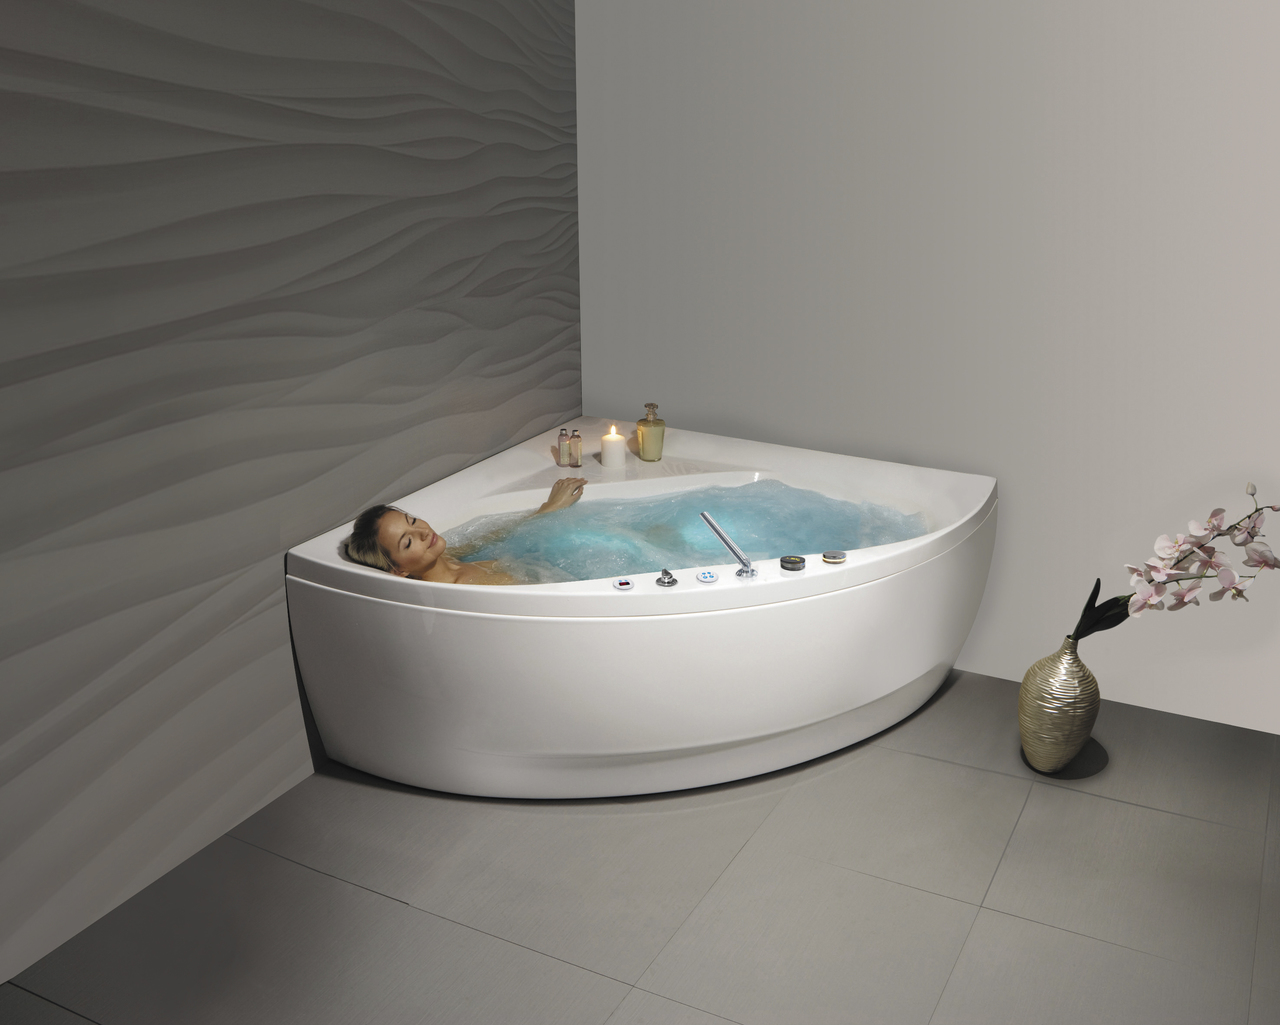 Beau Aquatica Olivia Wht Spa Jetted Corner Bathtub Usa 01 1 (web)